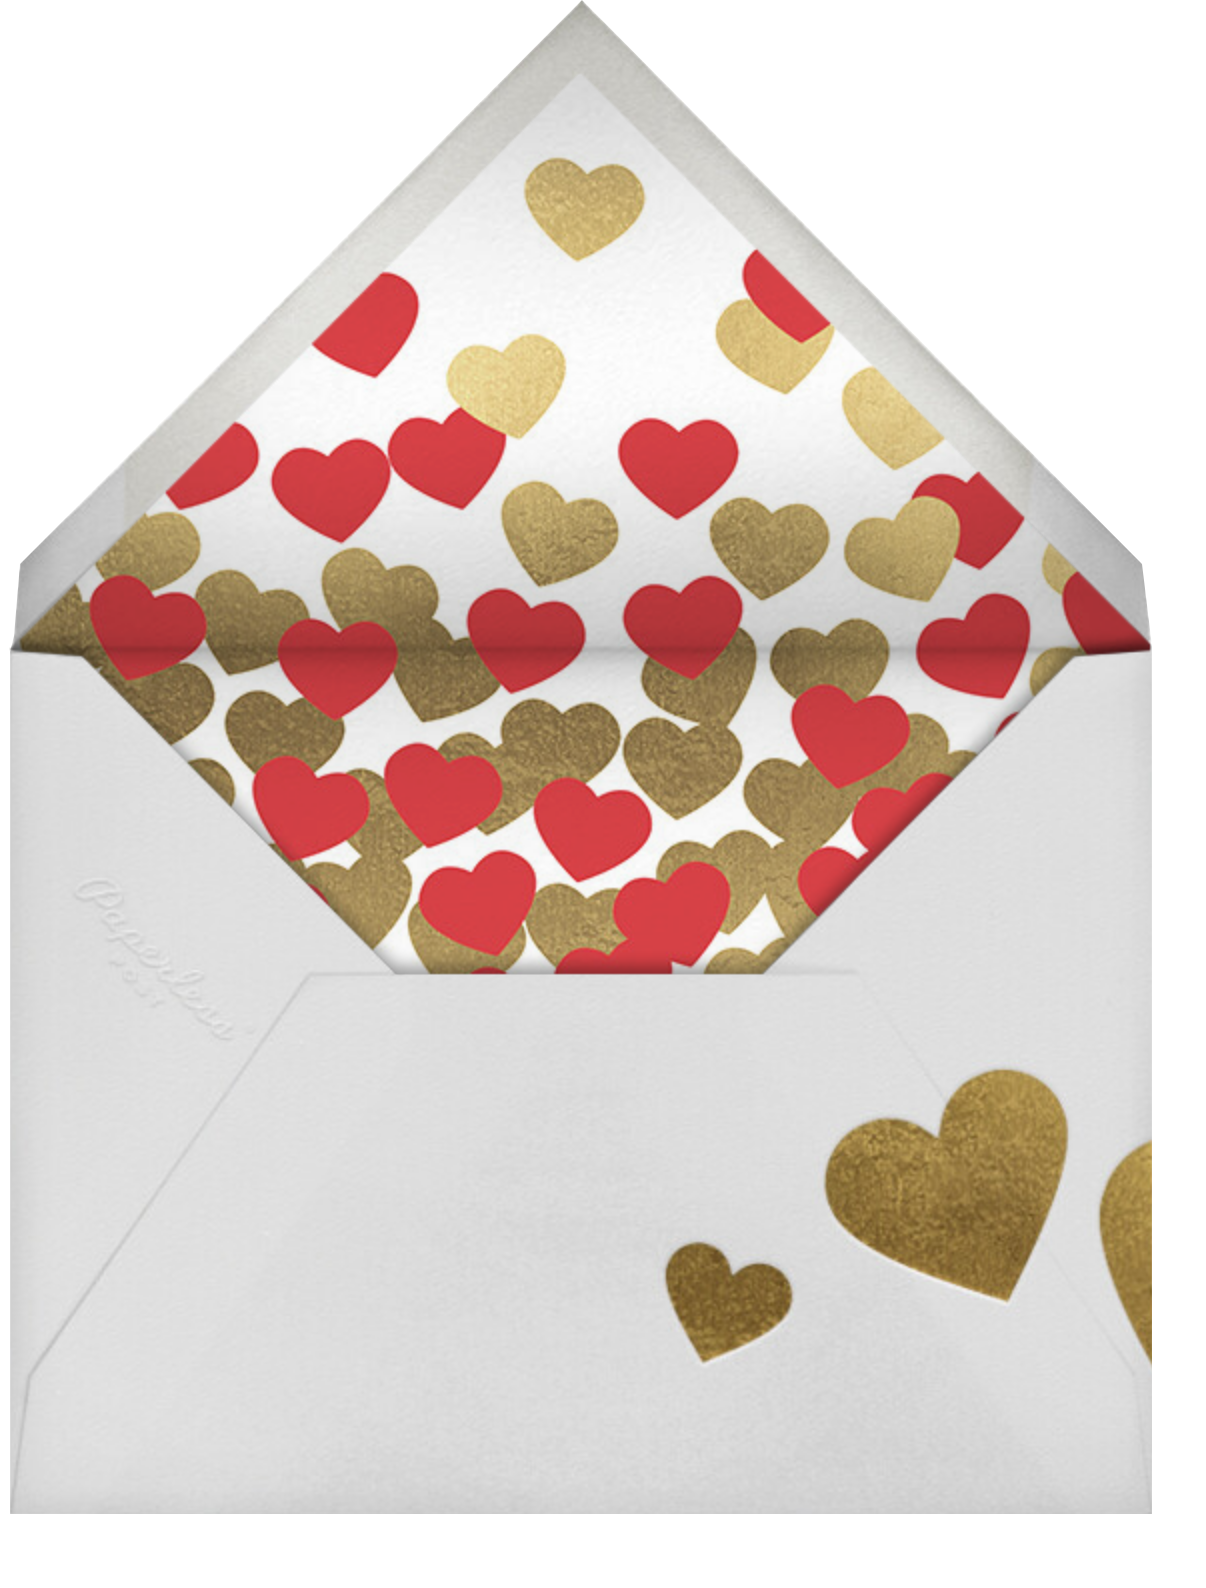 Equation To Your Heart - Paperless Post - Envelope